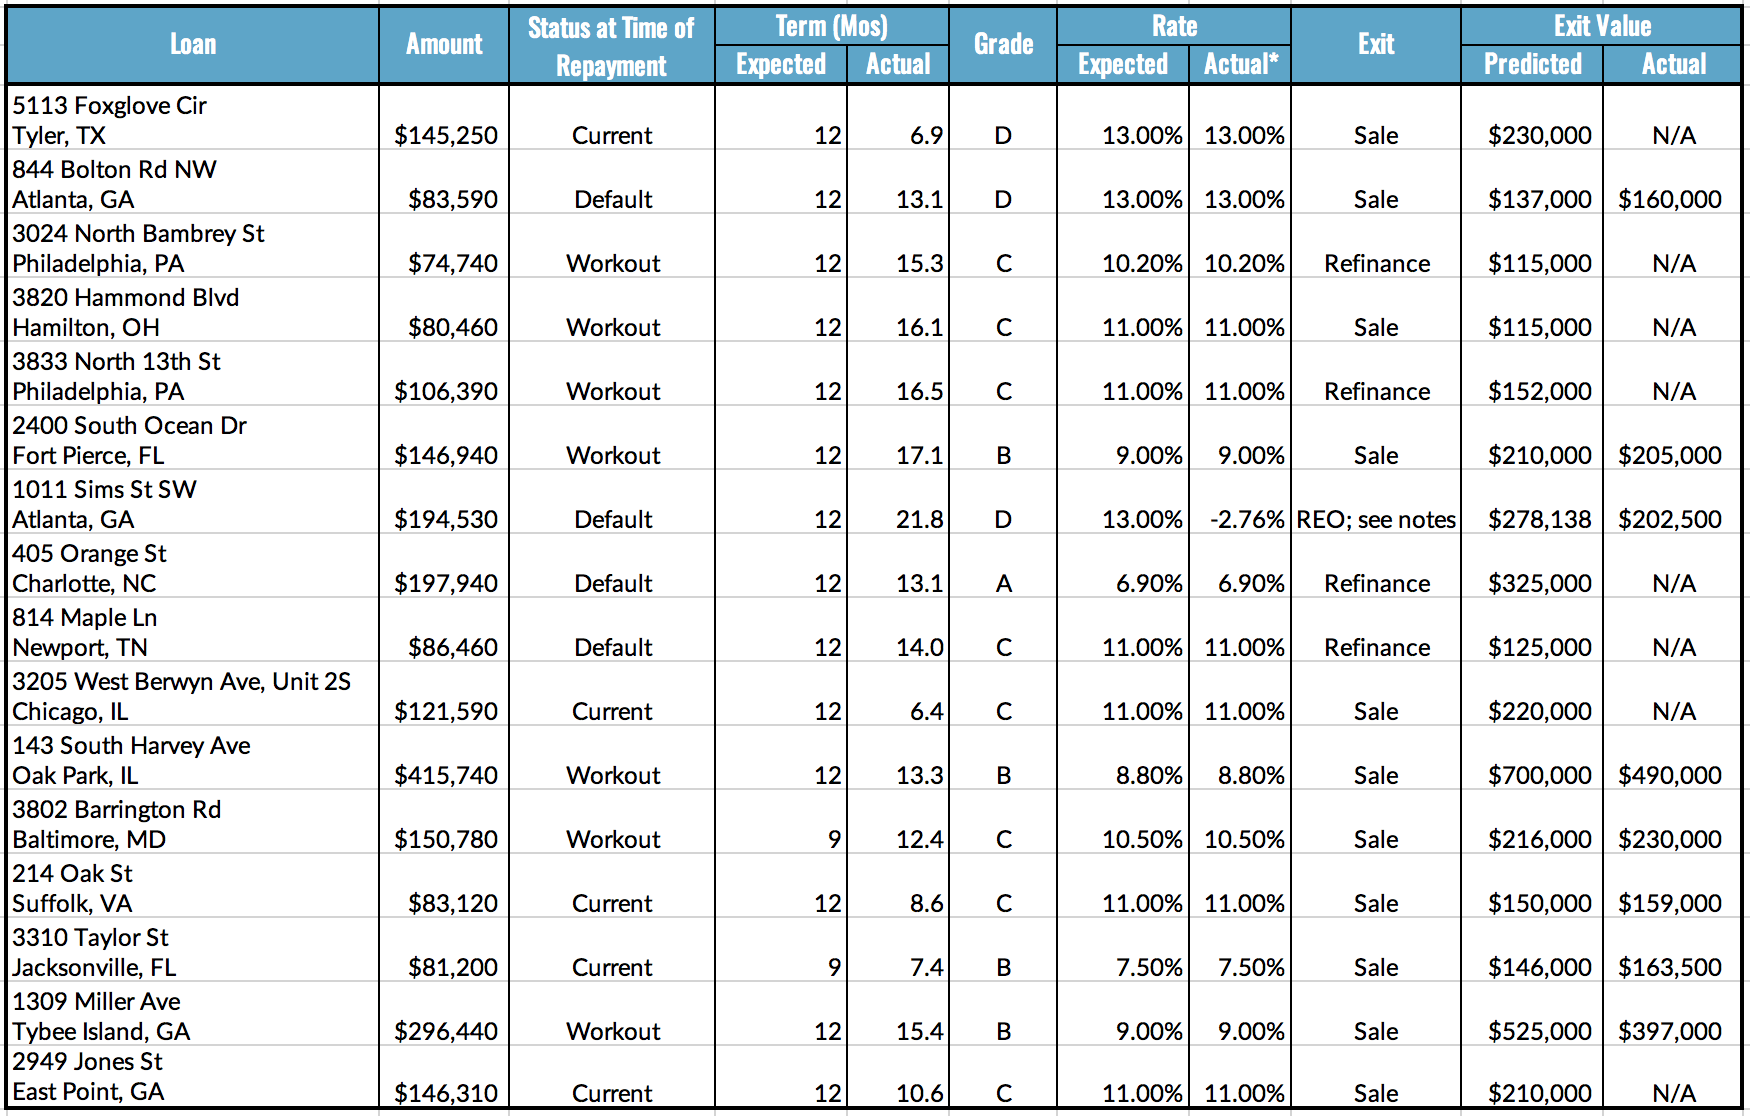 Loan Repayments Table, 9.6-12